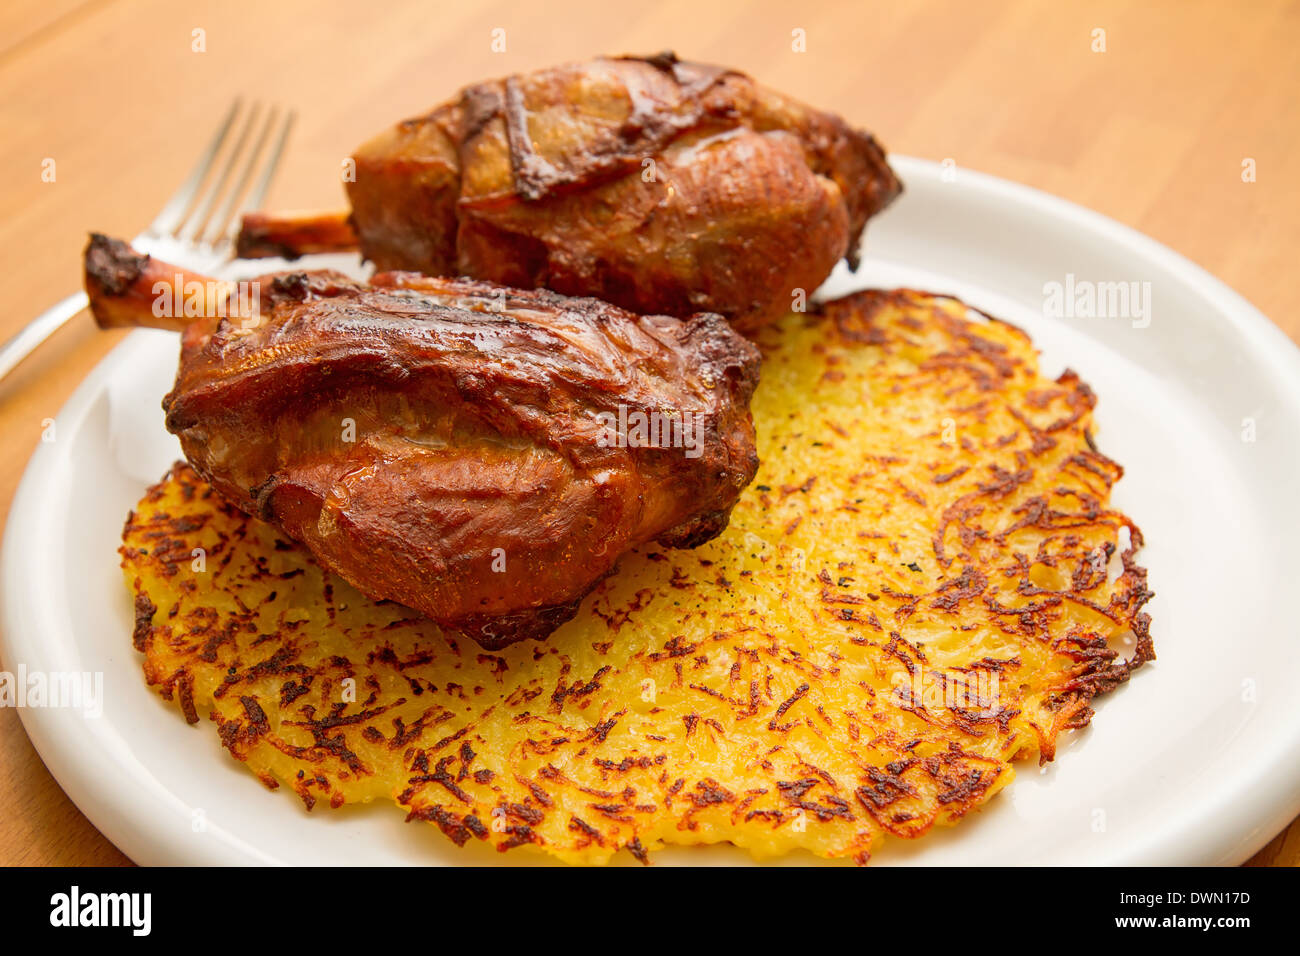 pig knuckle with potato fritter - Stock Image